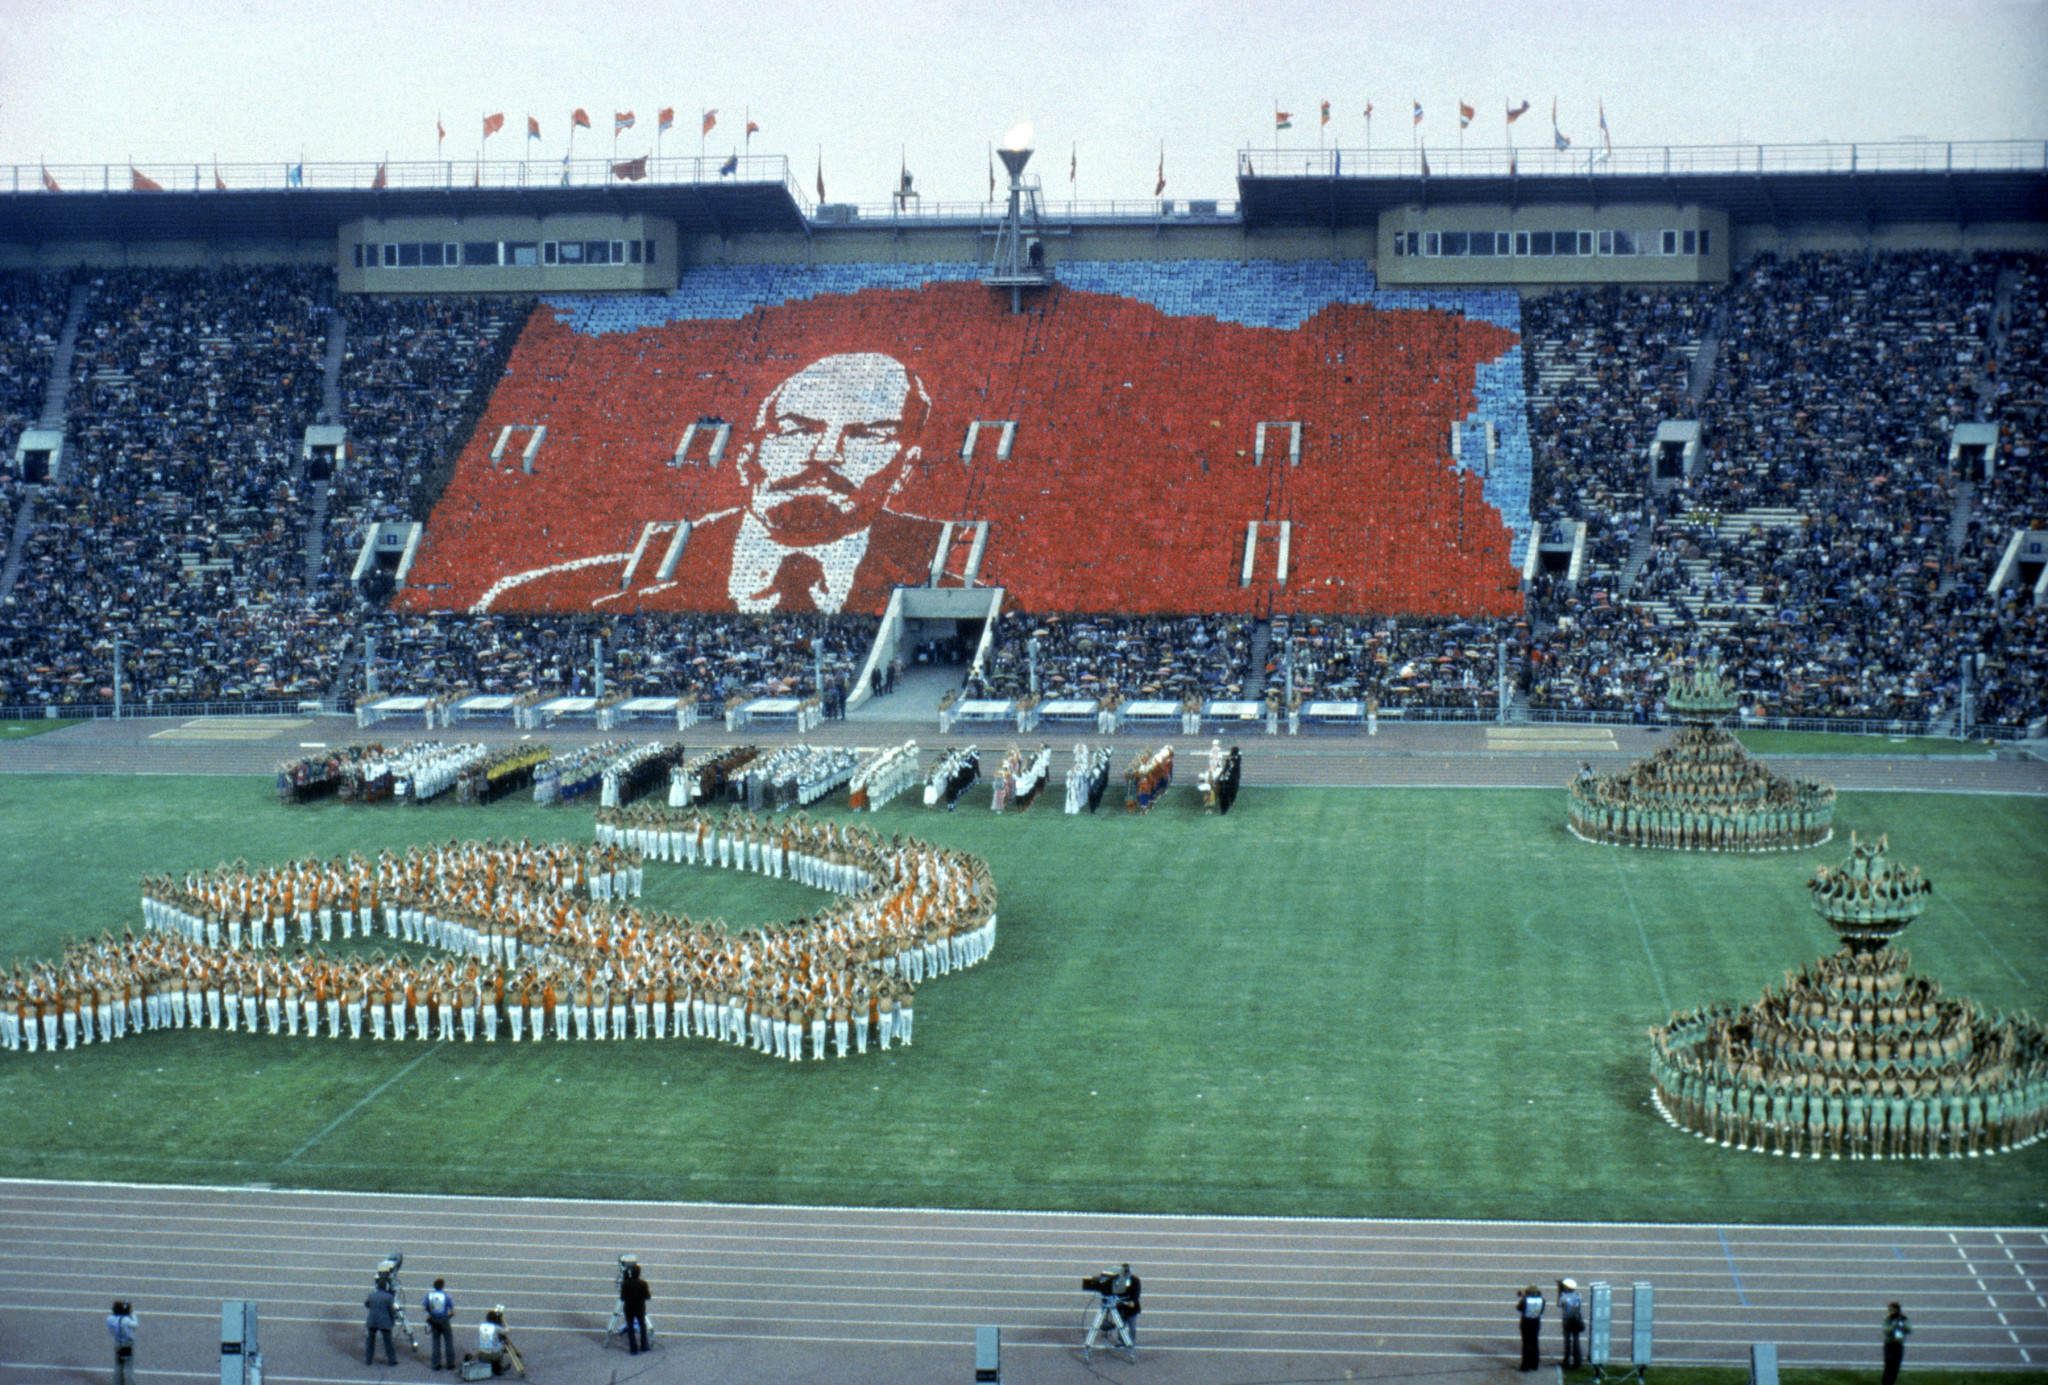 A scene from the controversial 1980 Moscow Olympics, with a giant picture of Soviet founder Lenin in the background ©Getty Images